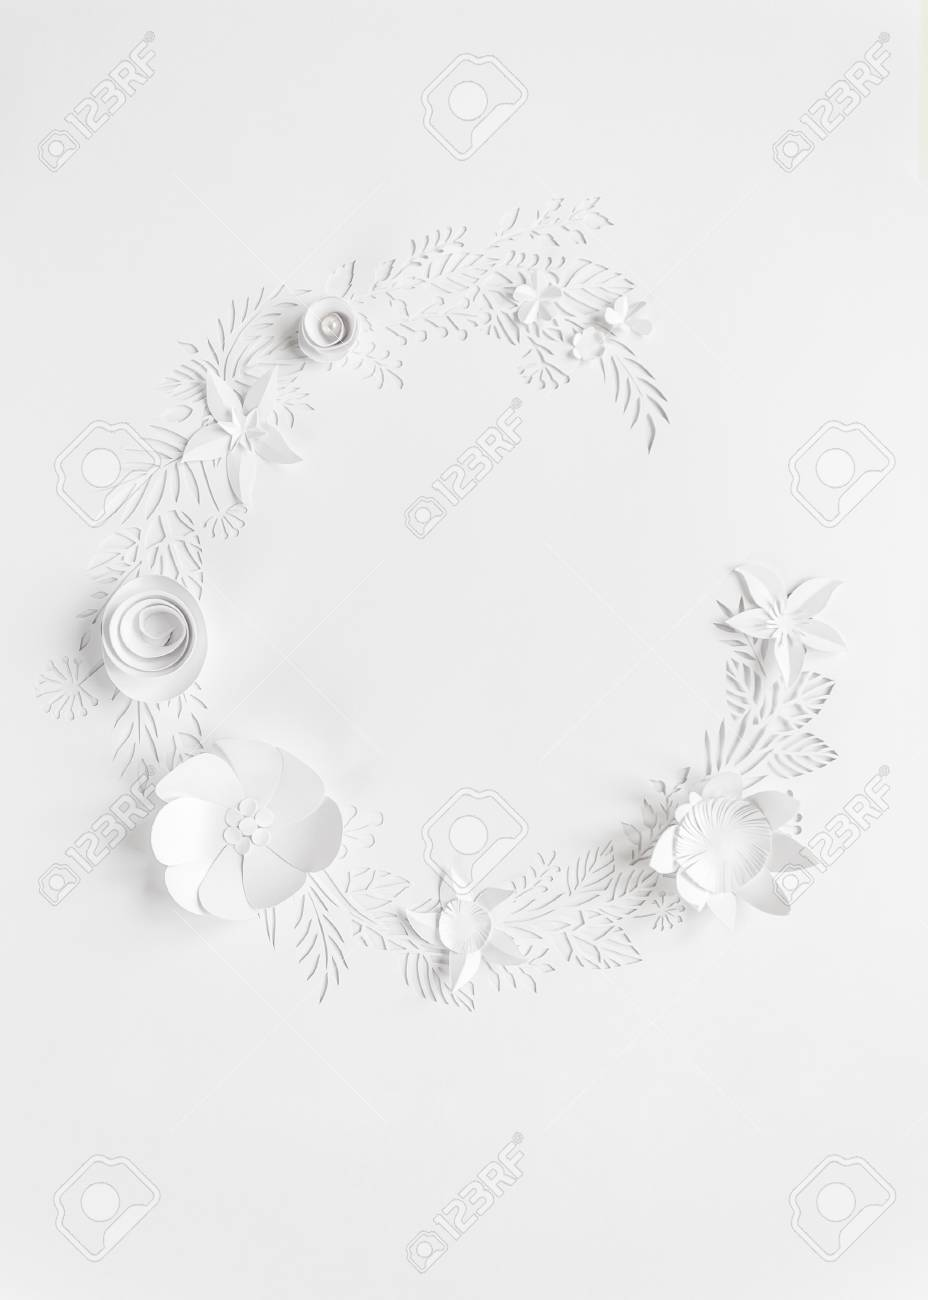 Round Frame With White Paper Flowers On White Background Cut